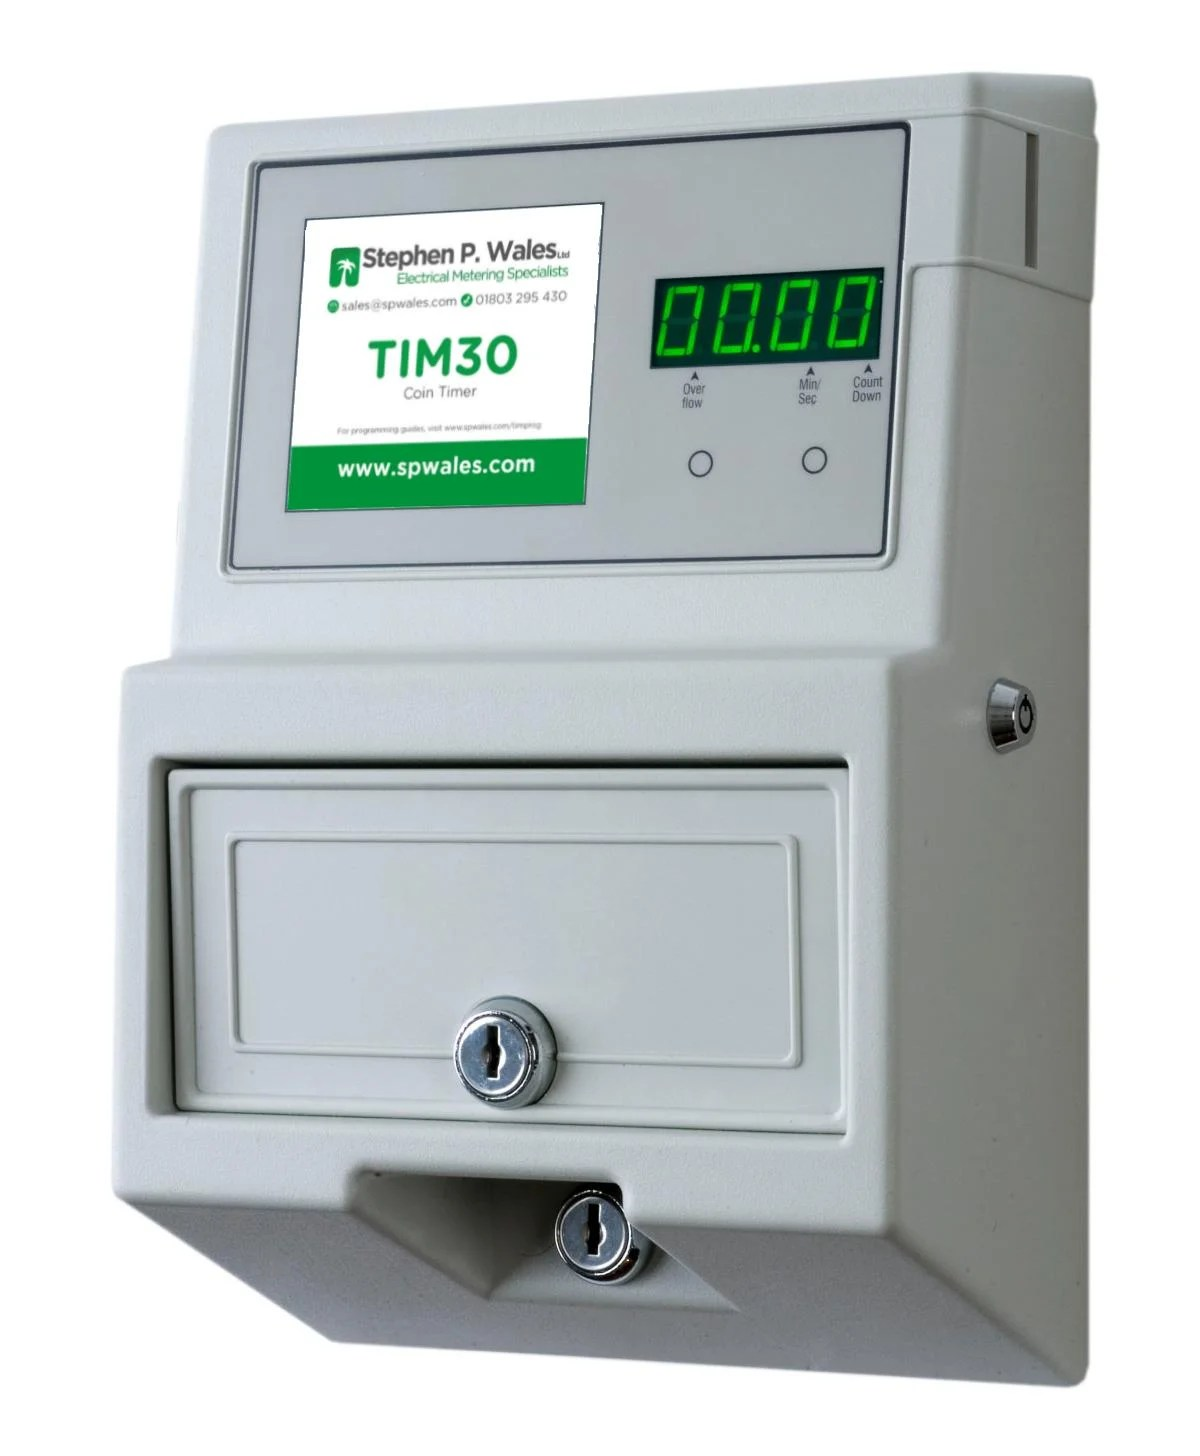 hight resolution of tim30 coin token meter